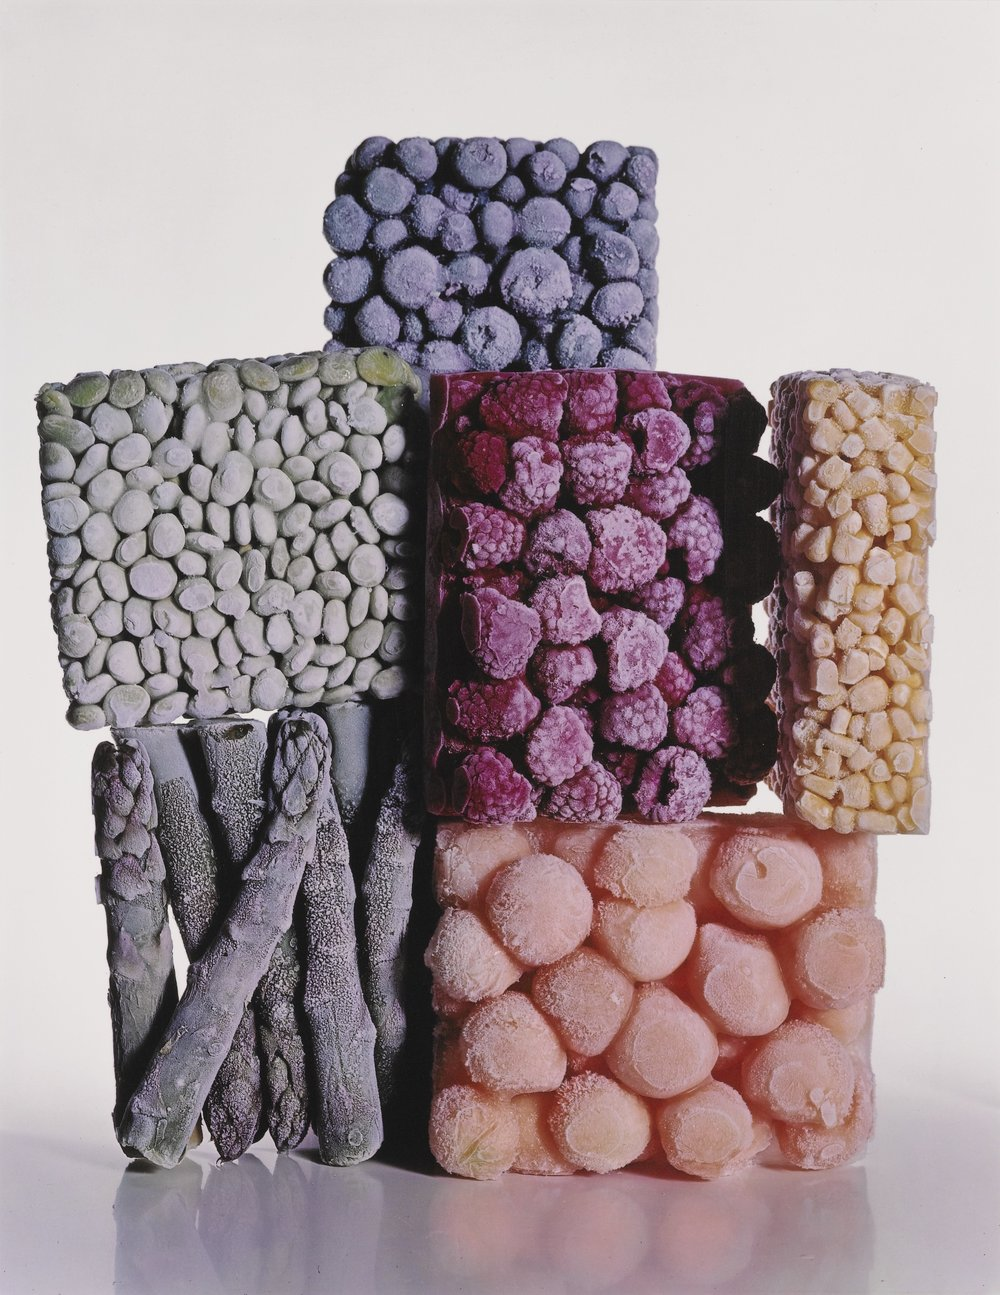 Frozen Foods, New York, 1977 [printed 1984] by Irving Penn, Estimate EUR 70,000 — 90,000